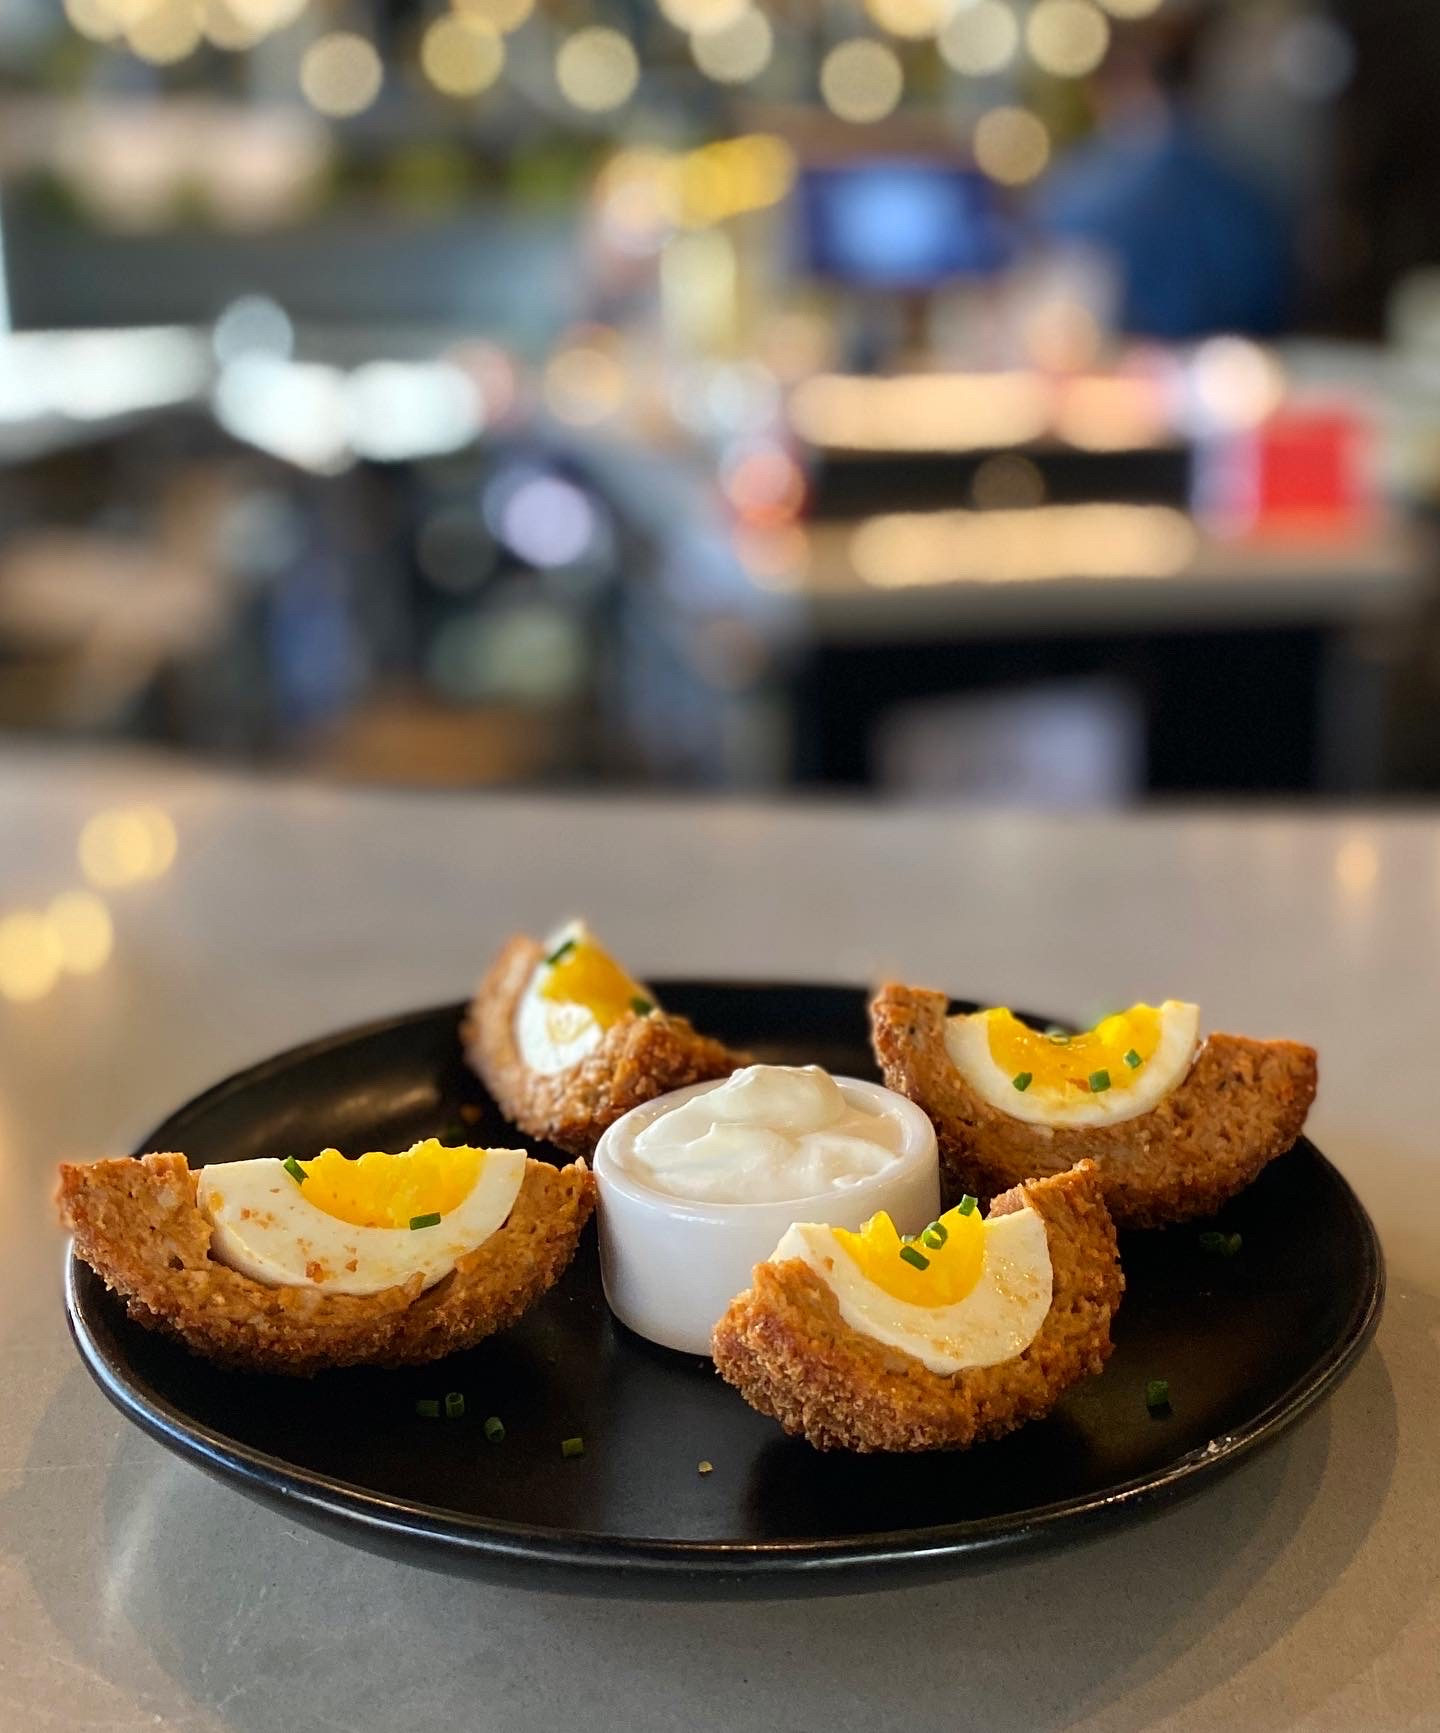 Chorizo Scotch Egg at Avid Cider Co. & Kitchen. (photo by Cat Stelzer)